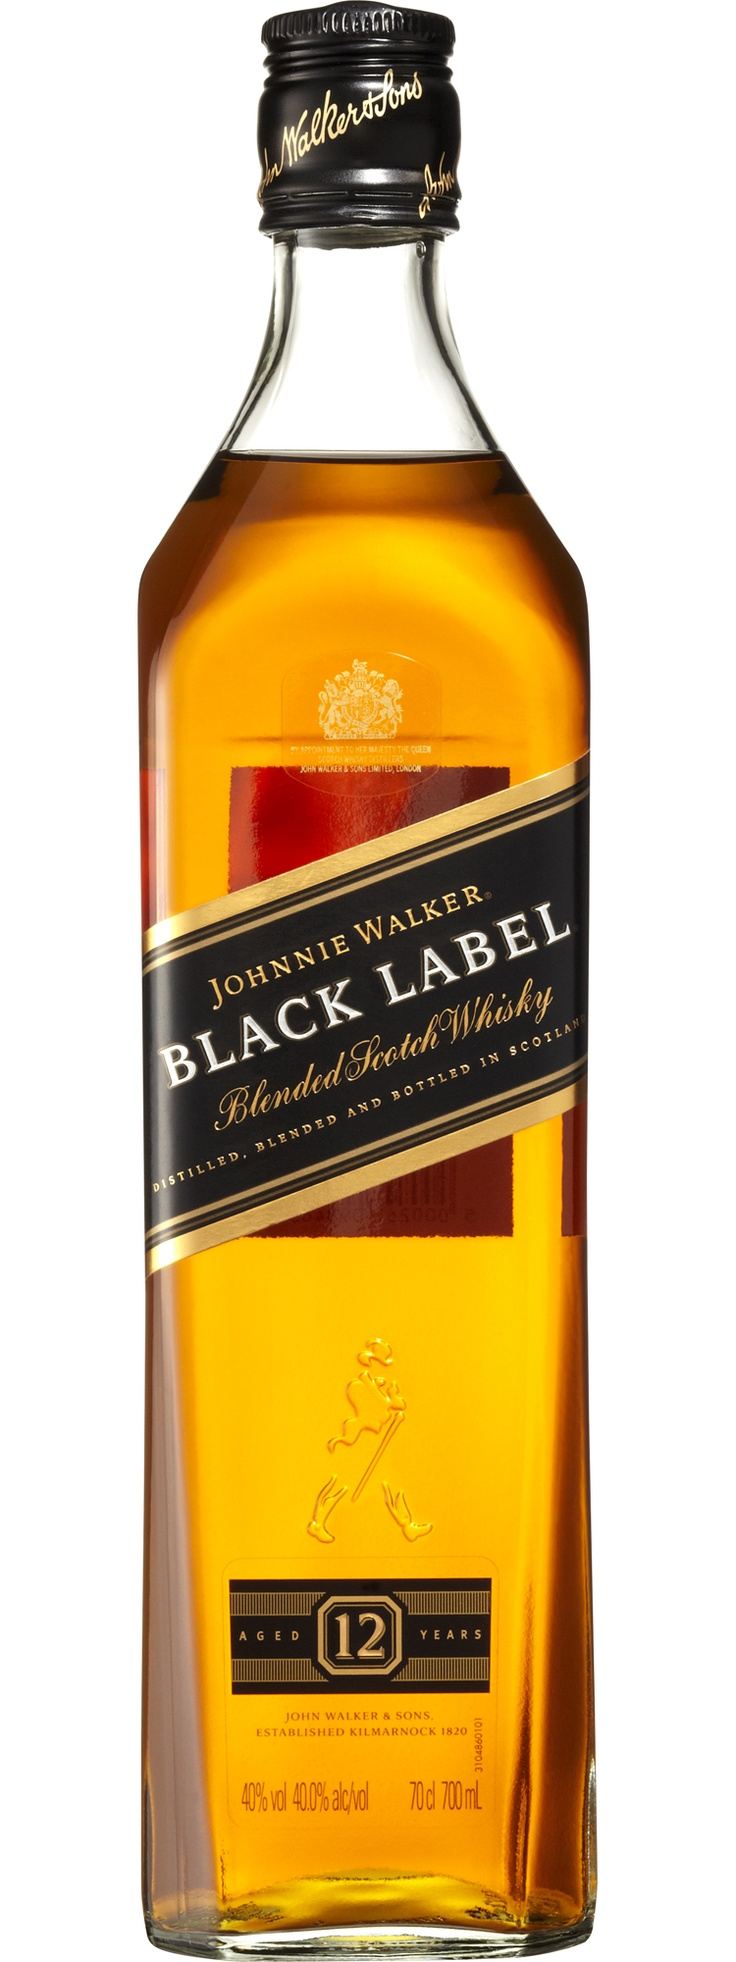 Johnnie Walker Black Label Blended Scotch Whiskey.